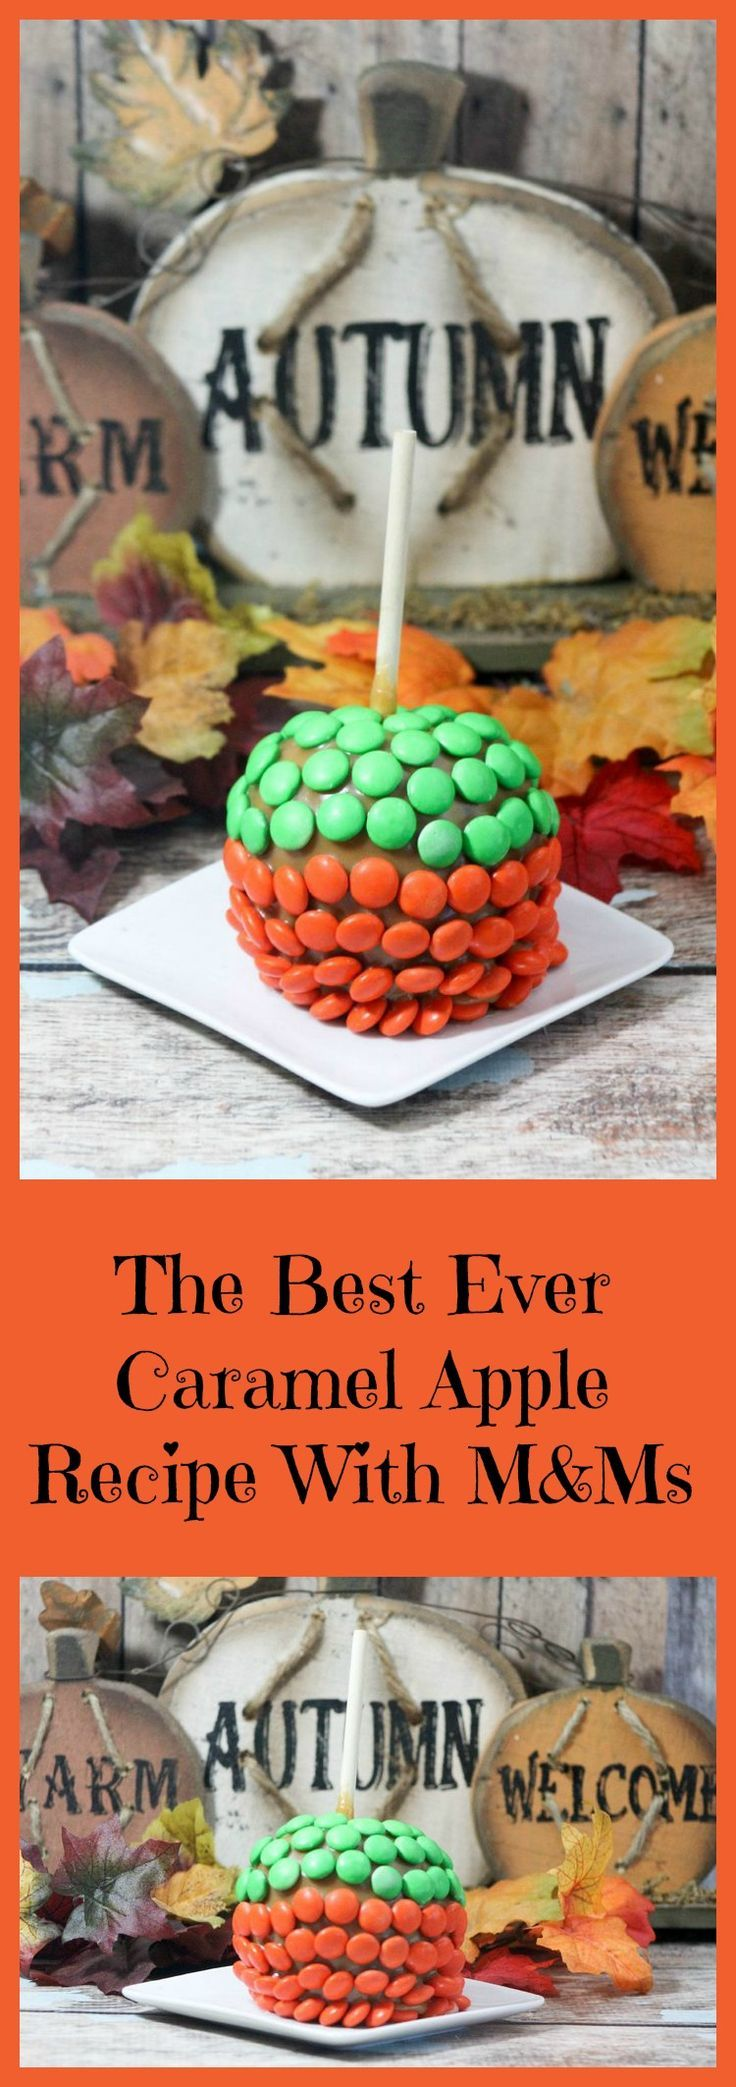 Ready for the best caramel apple recipe ever? This one shows you how to make your own caramel AND it's covered in M&Ms! So good! Check it out!